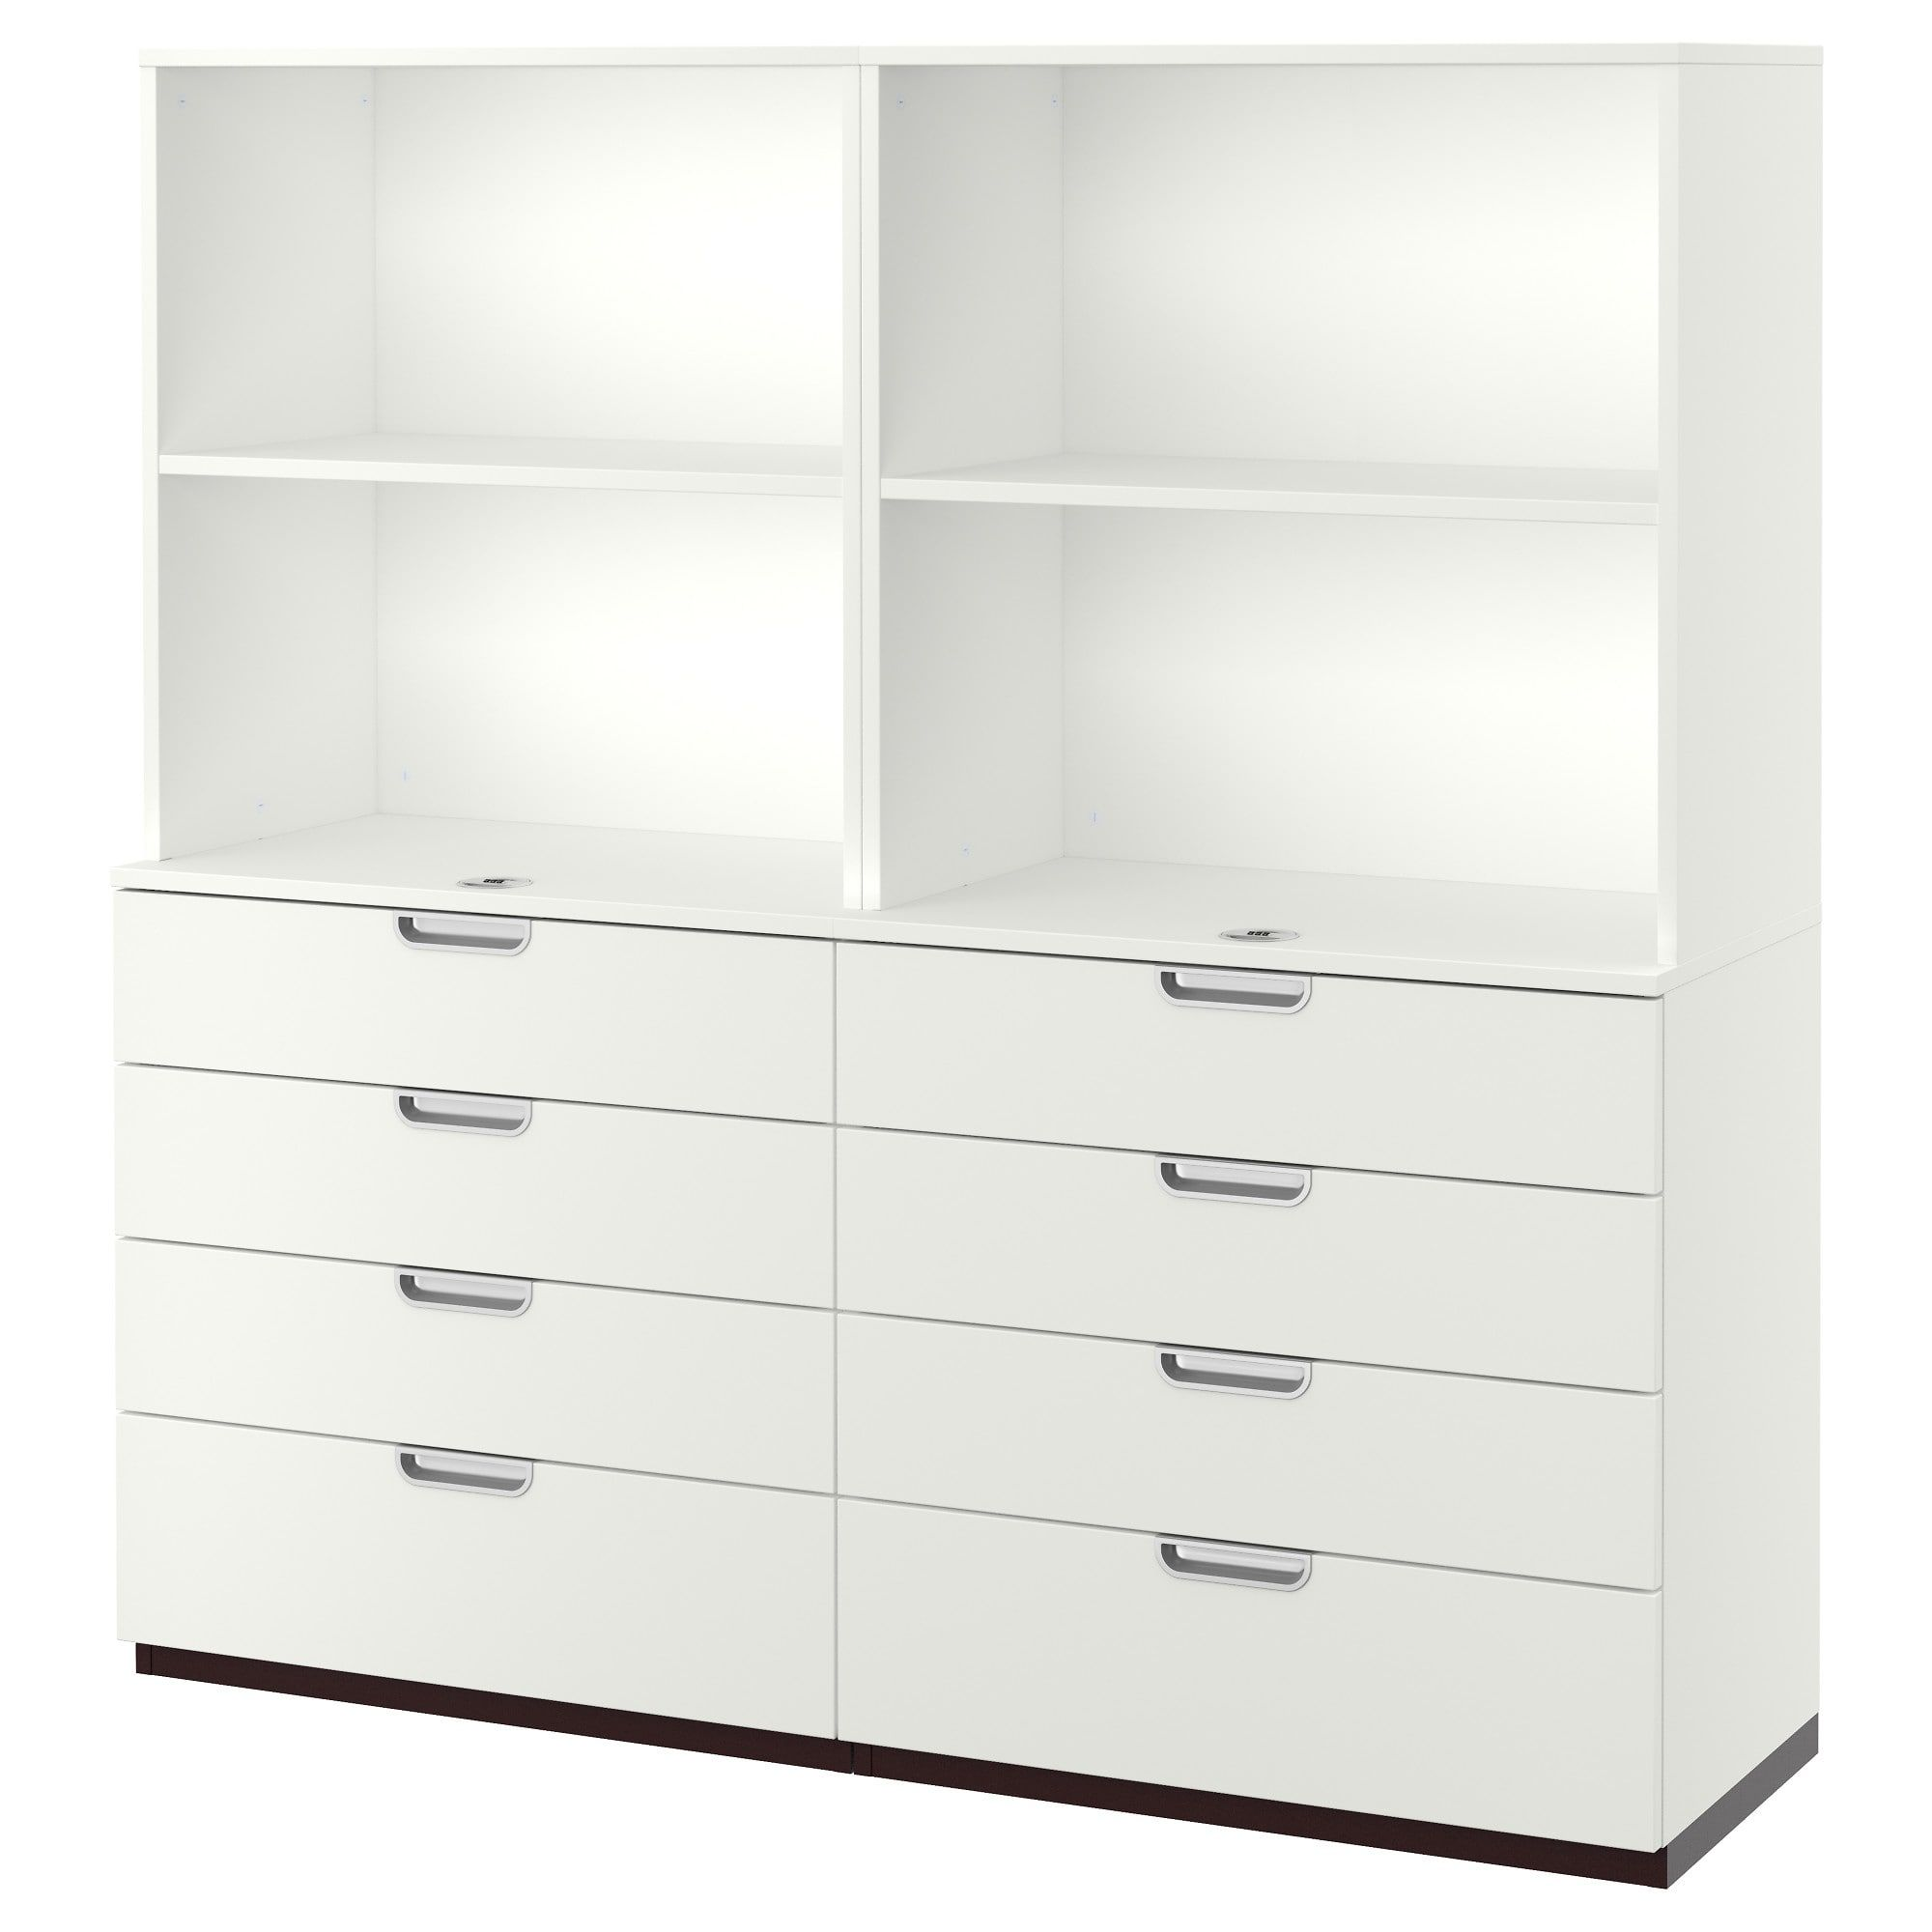 Furniture And Home Furnishings Ikea Galant Ikea Storage Ikea